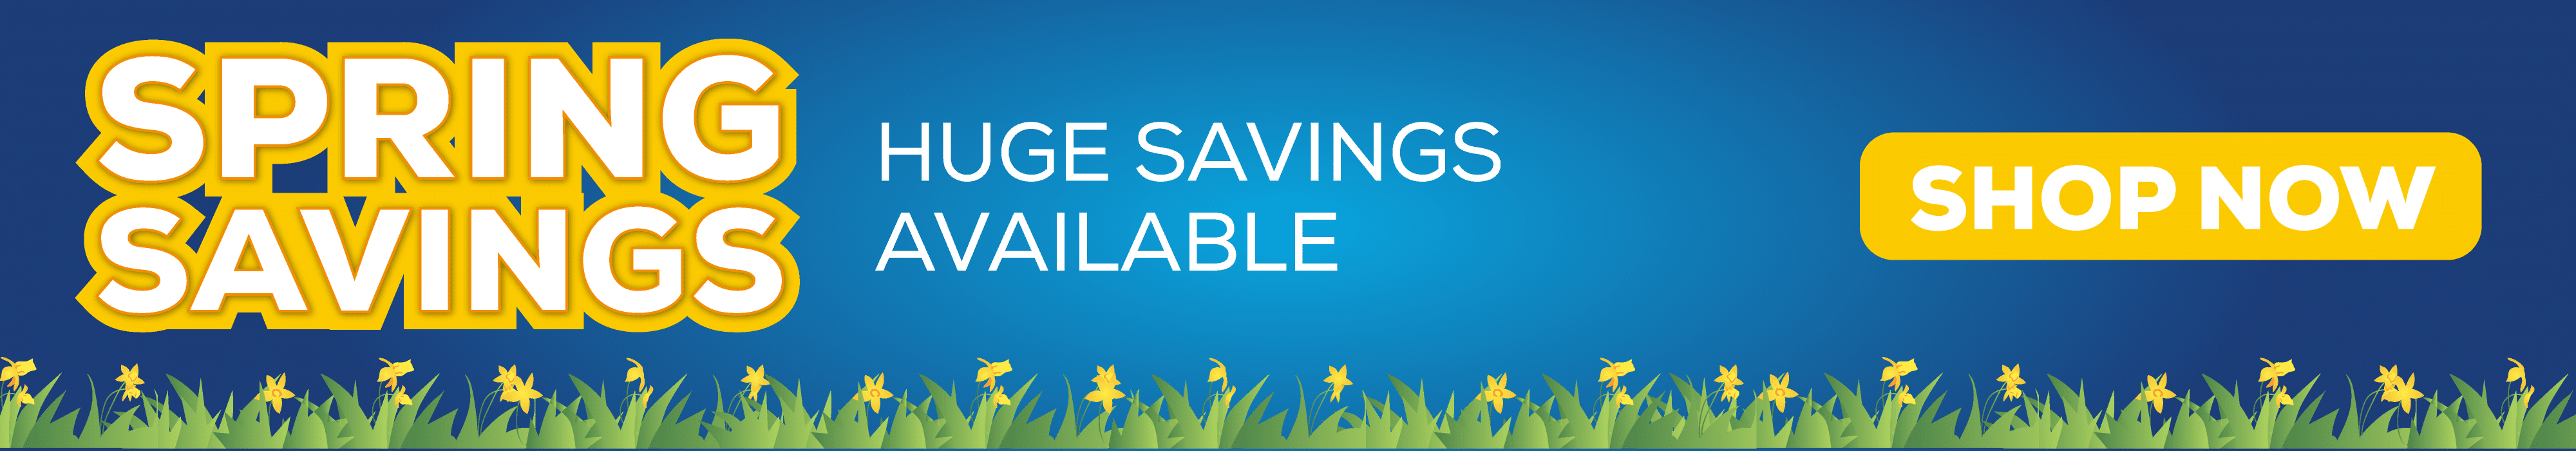 category banner sping savings 2021